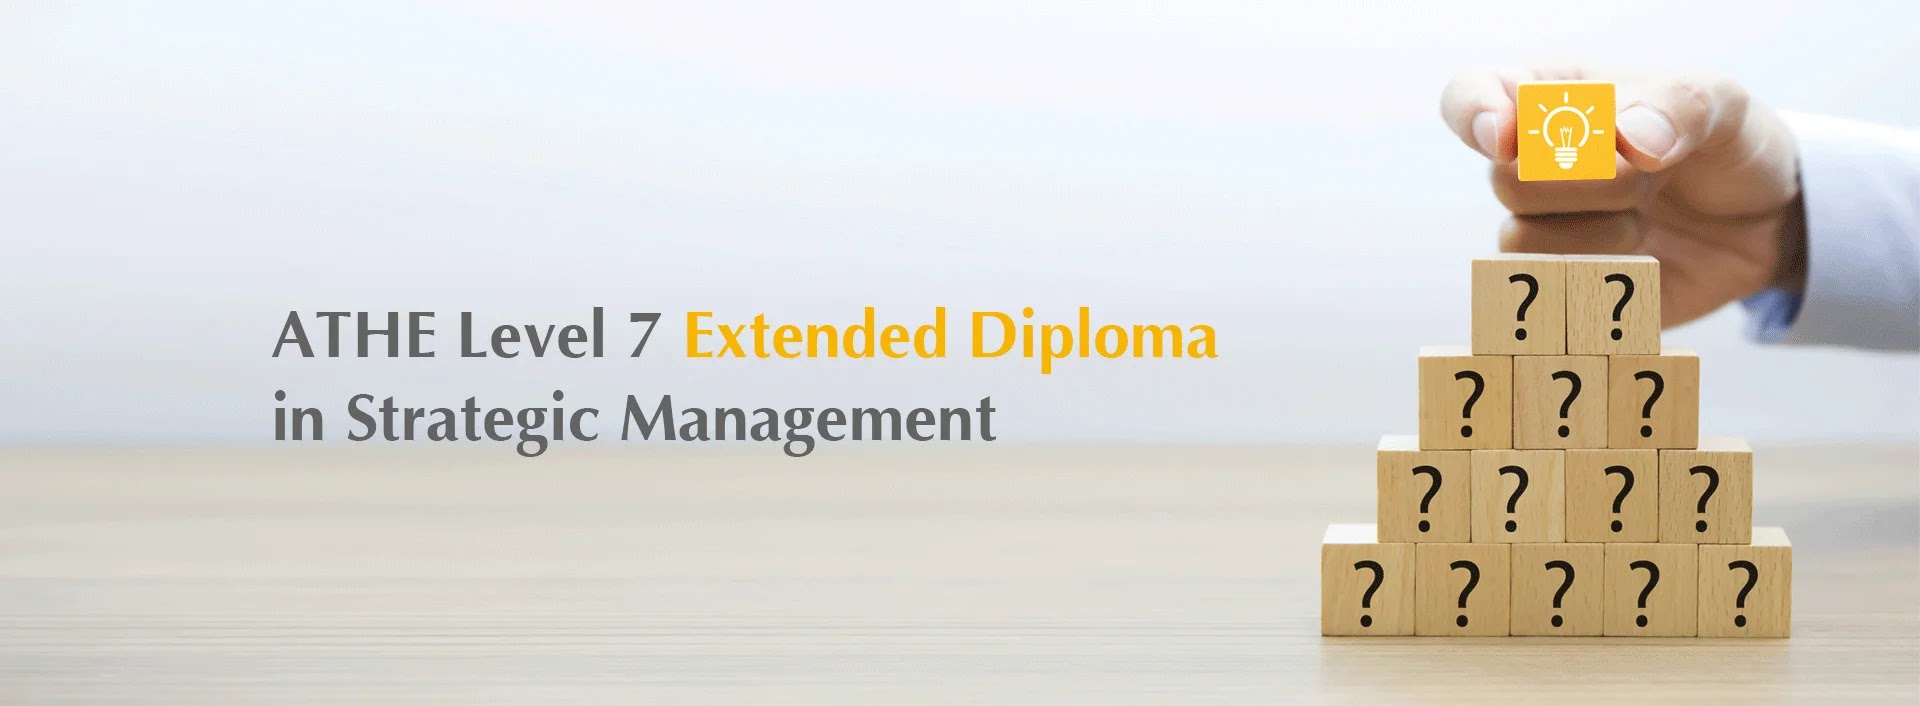 Top Ranked ATHE Level 7 Extended Diploma